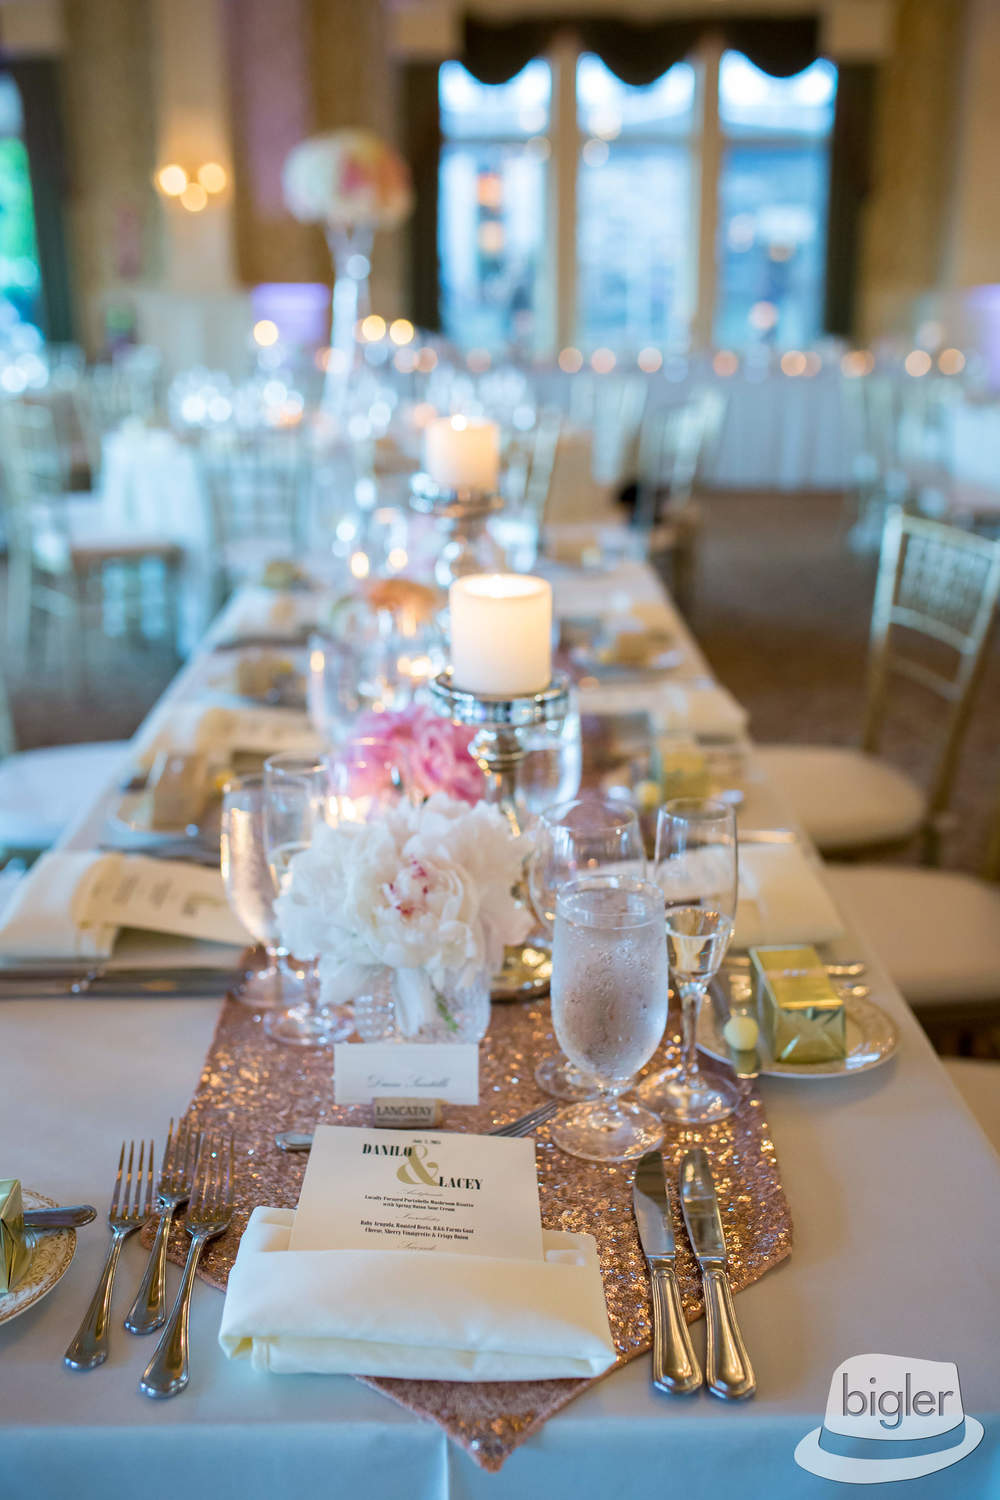 Blush sequined runners worked beautifully for the low tablescape. They glistened against the different mercury candles holders and pebble vases. Lots of textures and of course ... beautiful flowers!